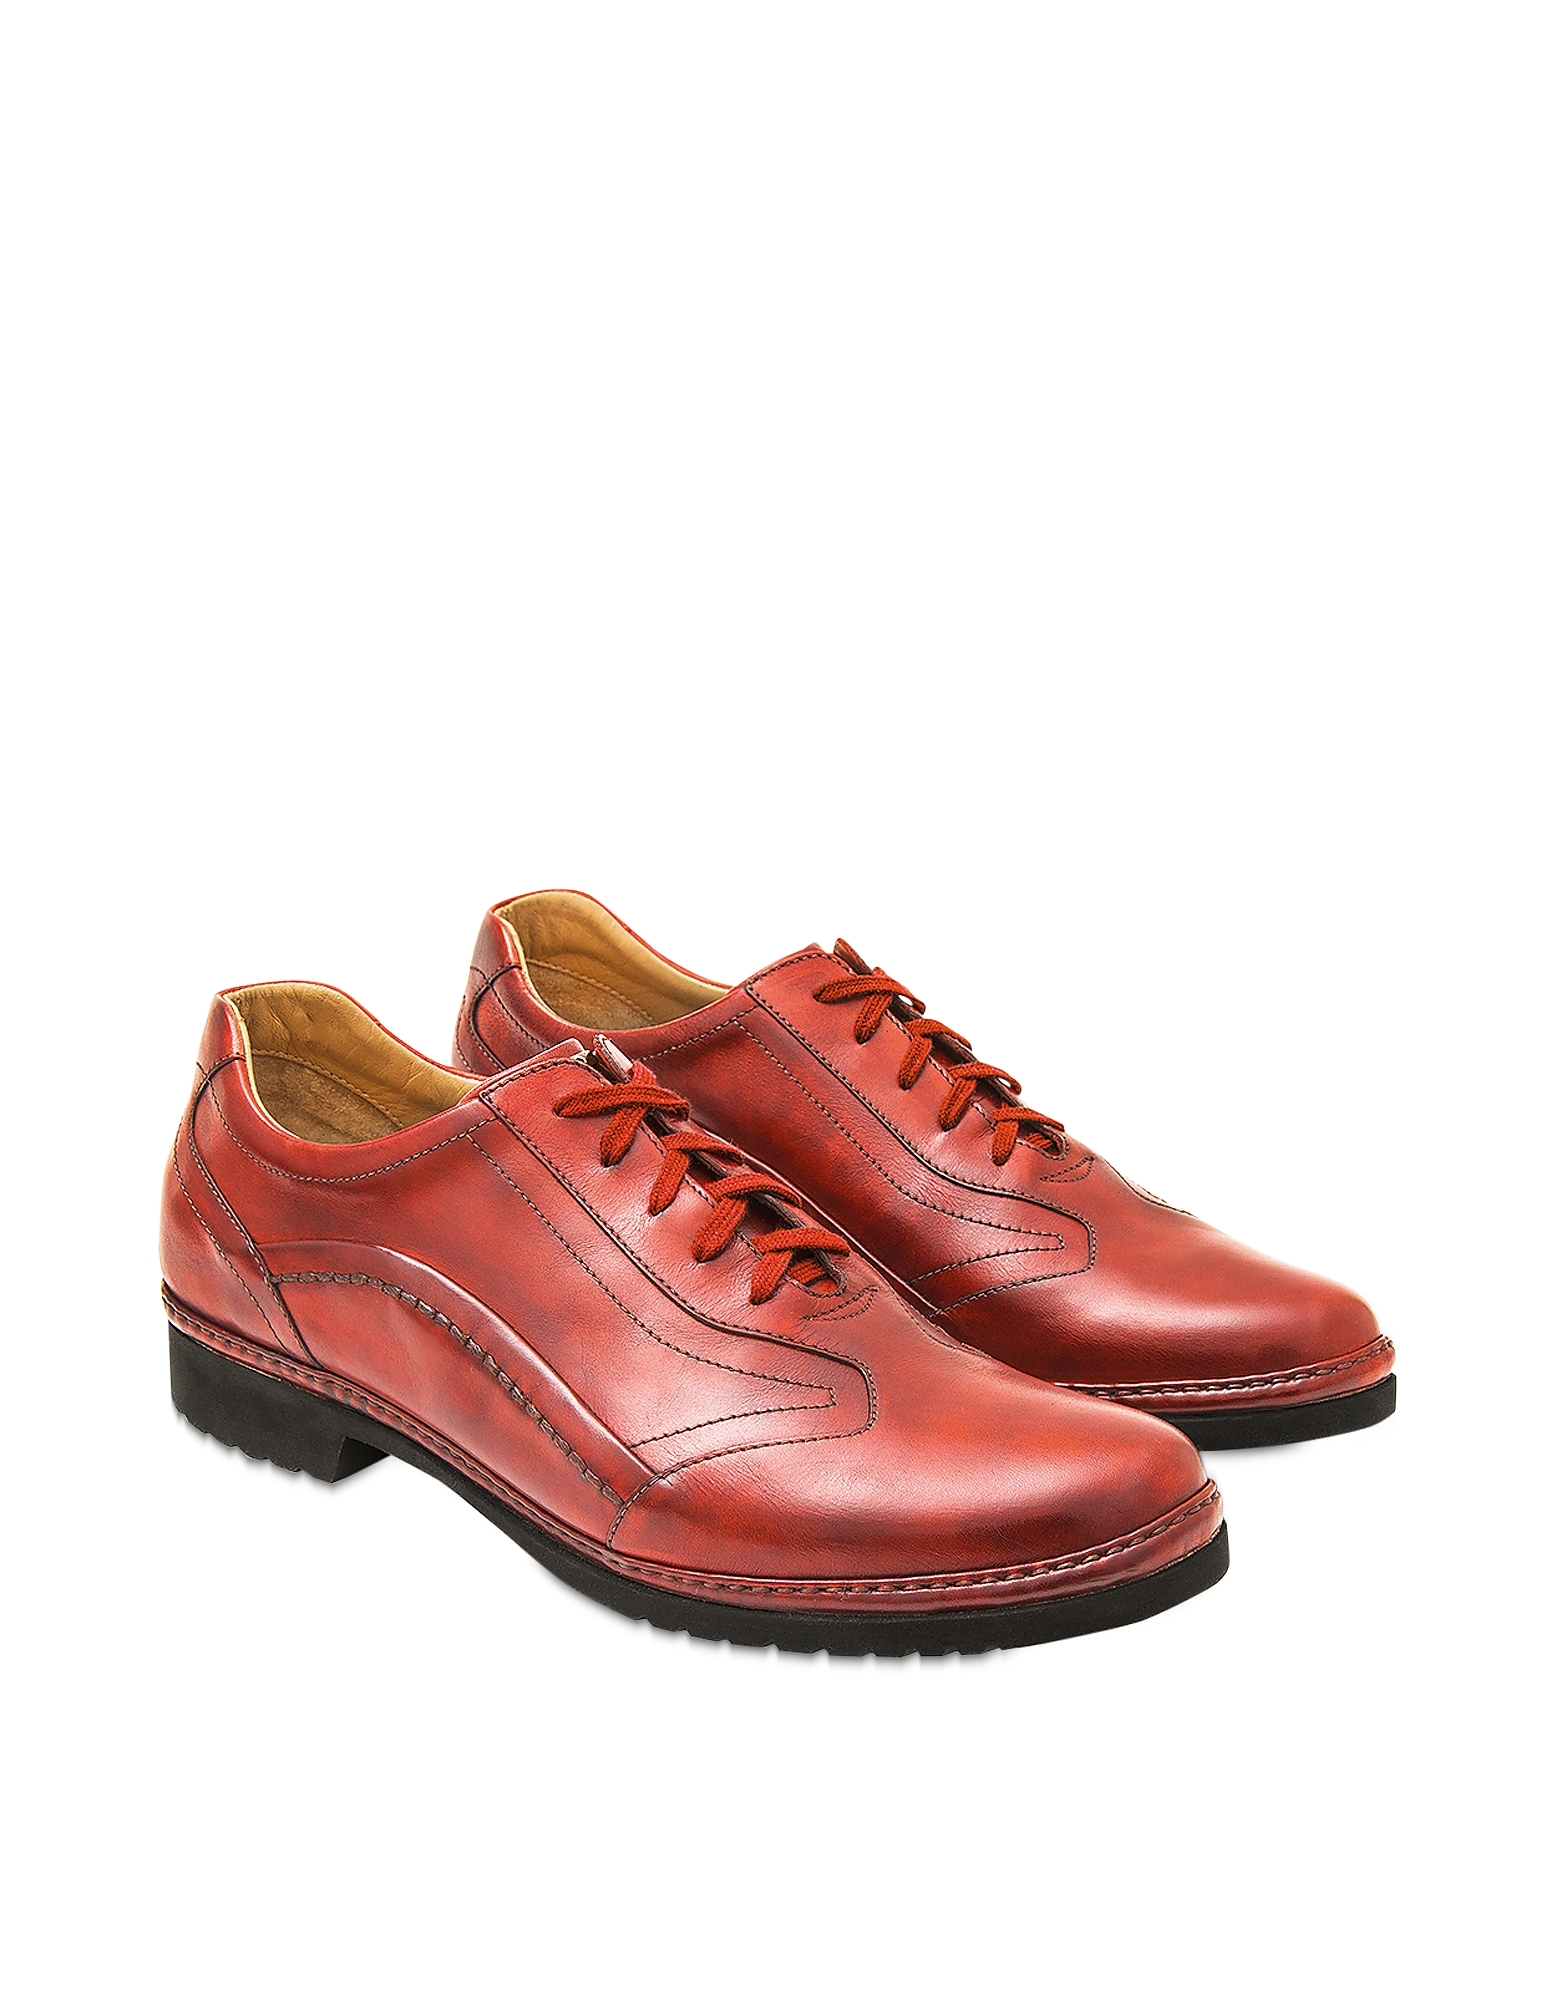 Red Italian Handmade Leather Lace-up Shoes